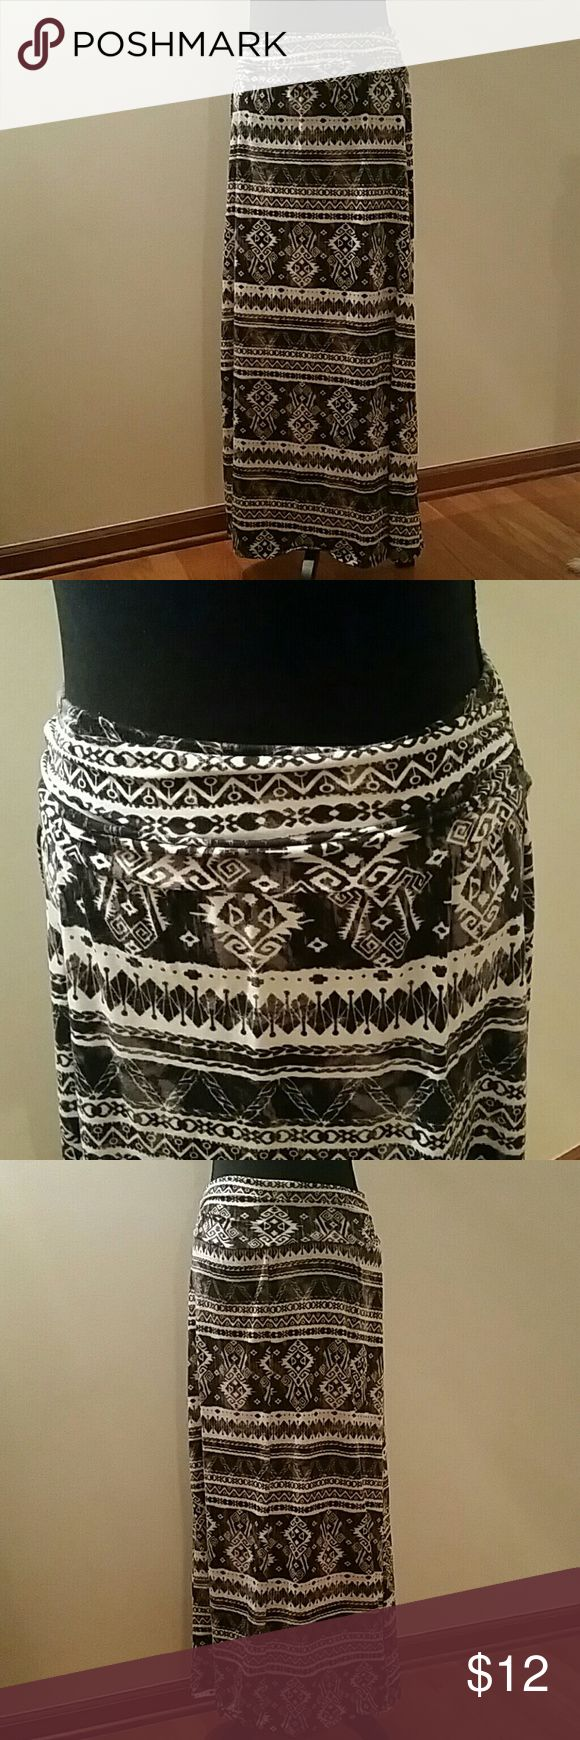 """Black & White Tribal Maxi Skirt Black & White maxi skirt, tribal print, 40"""" length (including 3.5"""" ruched waistband).  Stretchy cotton fabric. Size large, fits sizes 8-12. Gently worn, very good condition! Skirts Maxi"""